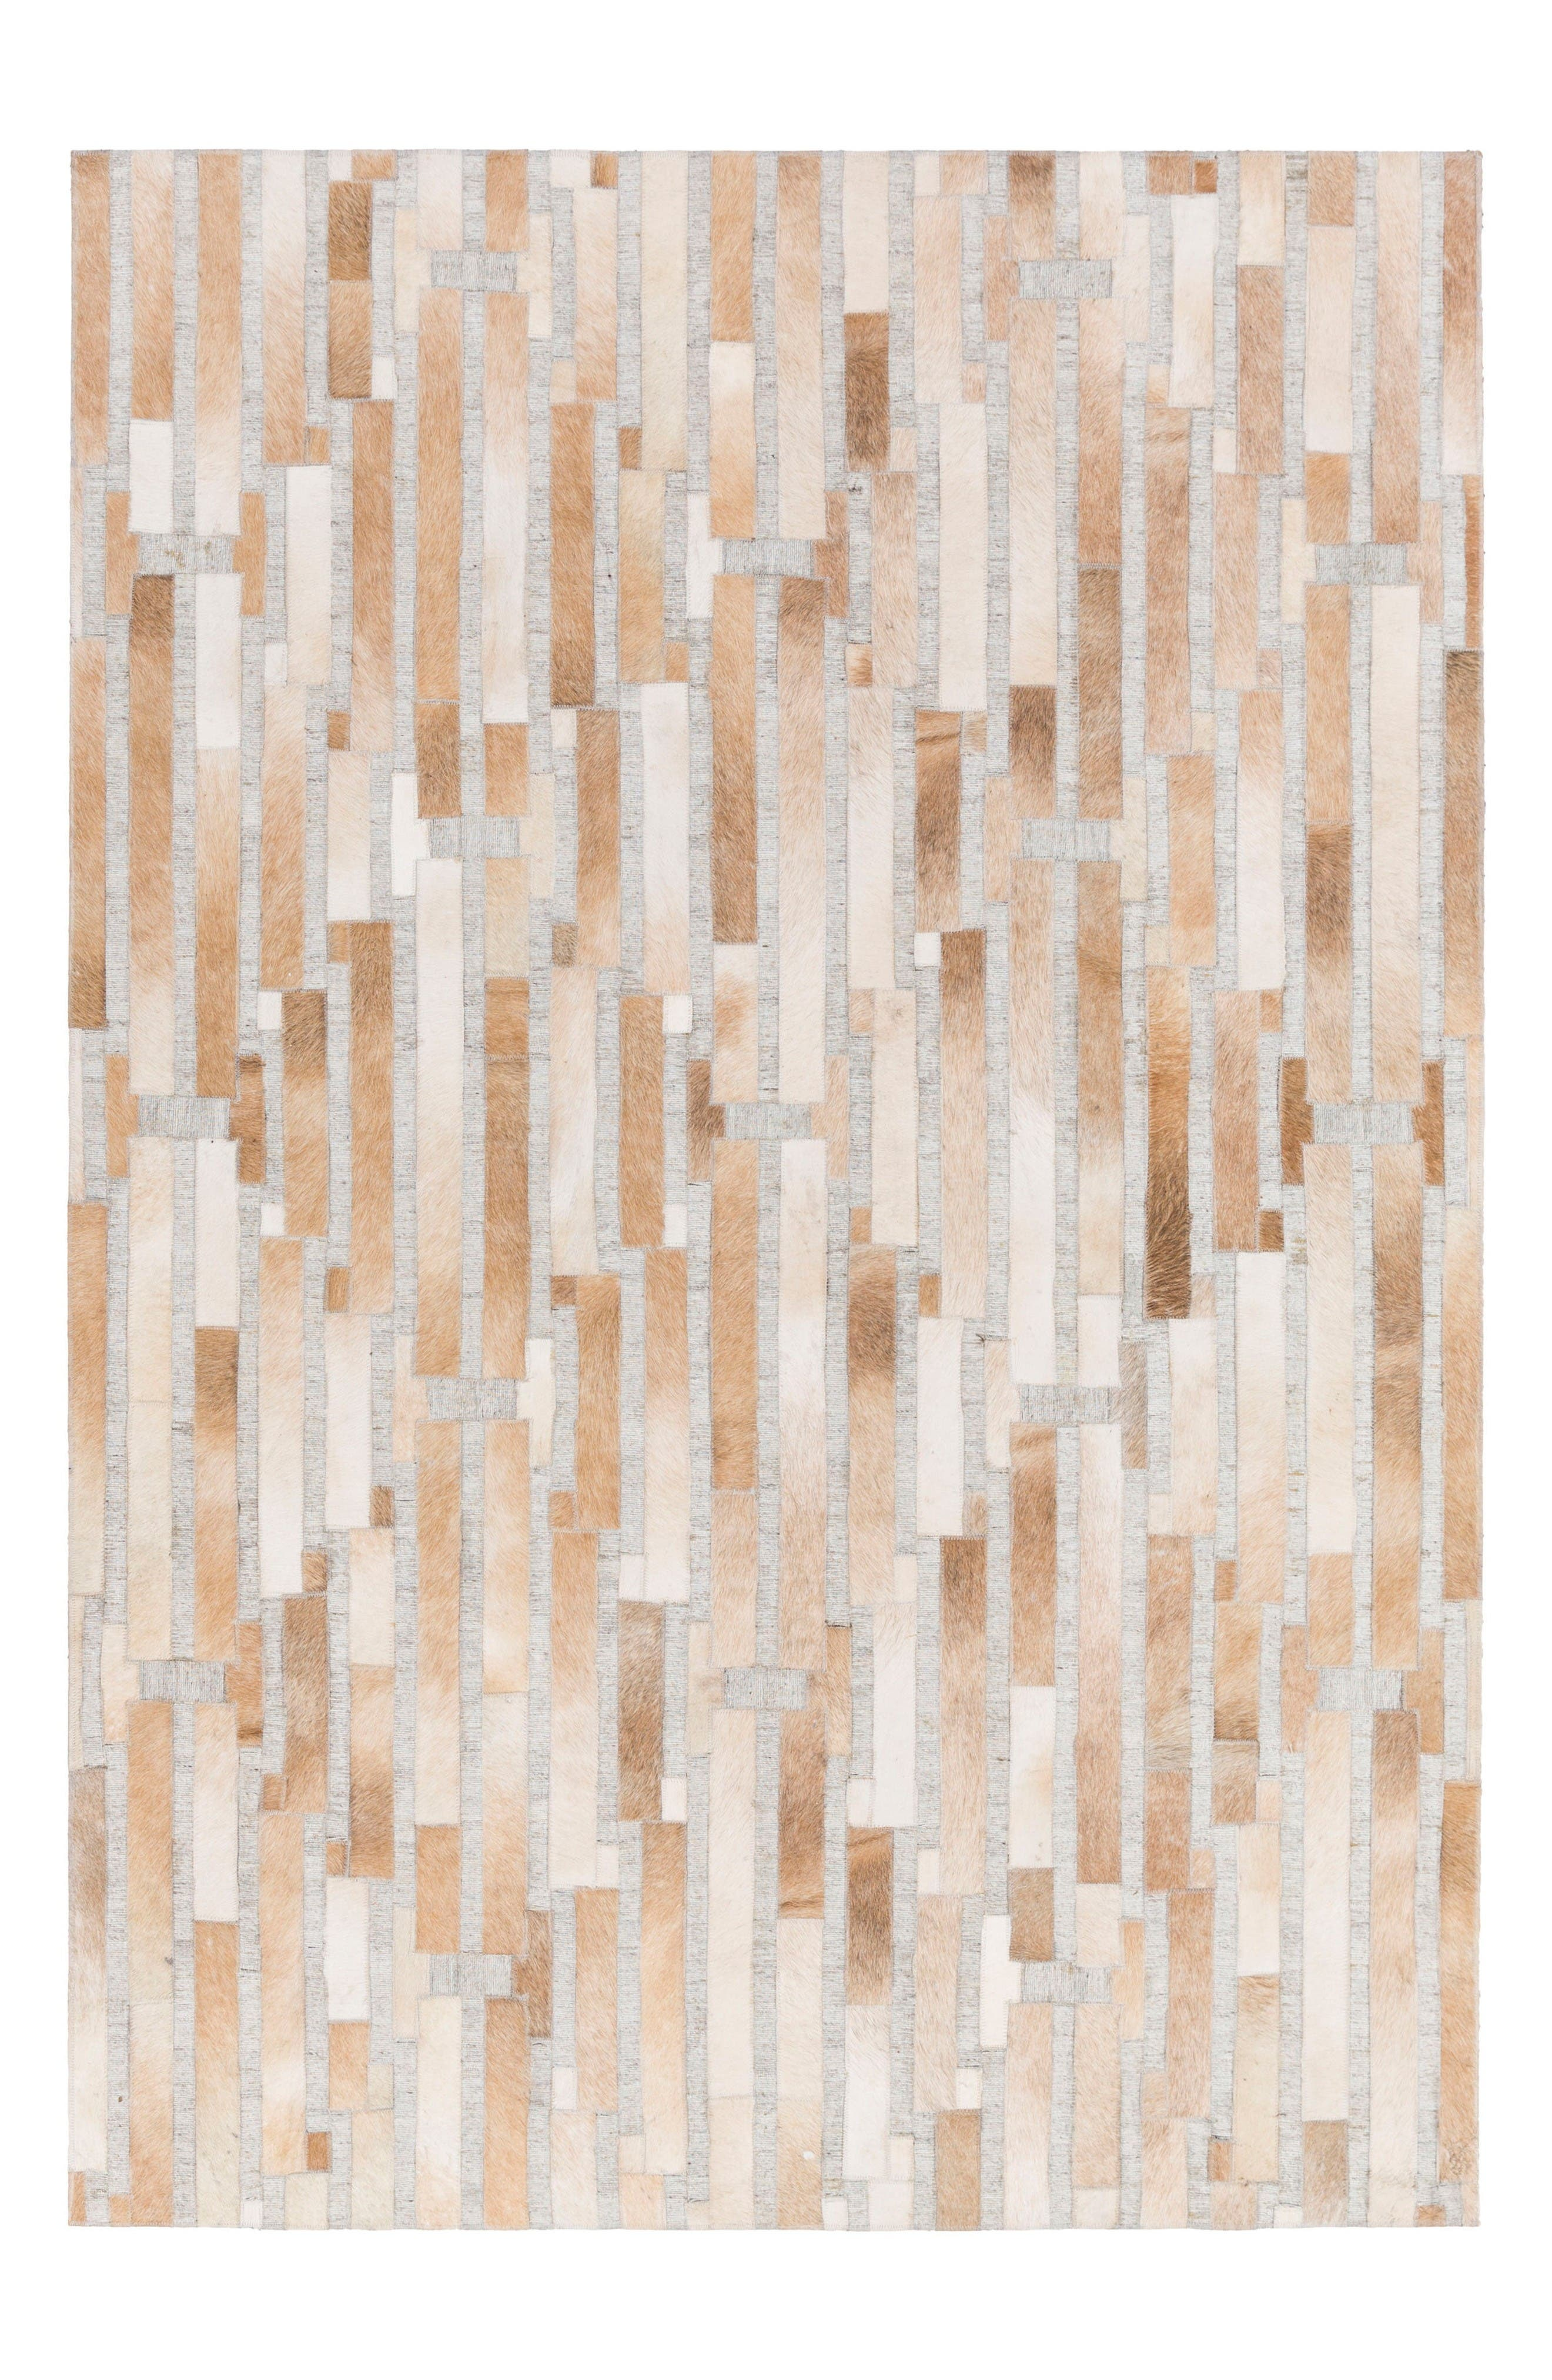 Alternate Image 1 Selected - Surya Home Medora Les Genuine Calf Hair Rug